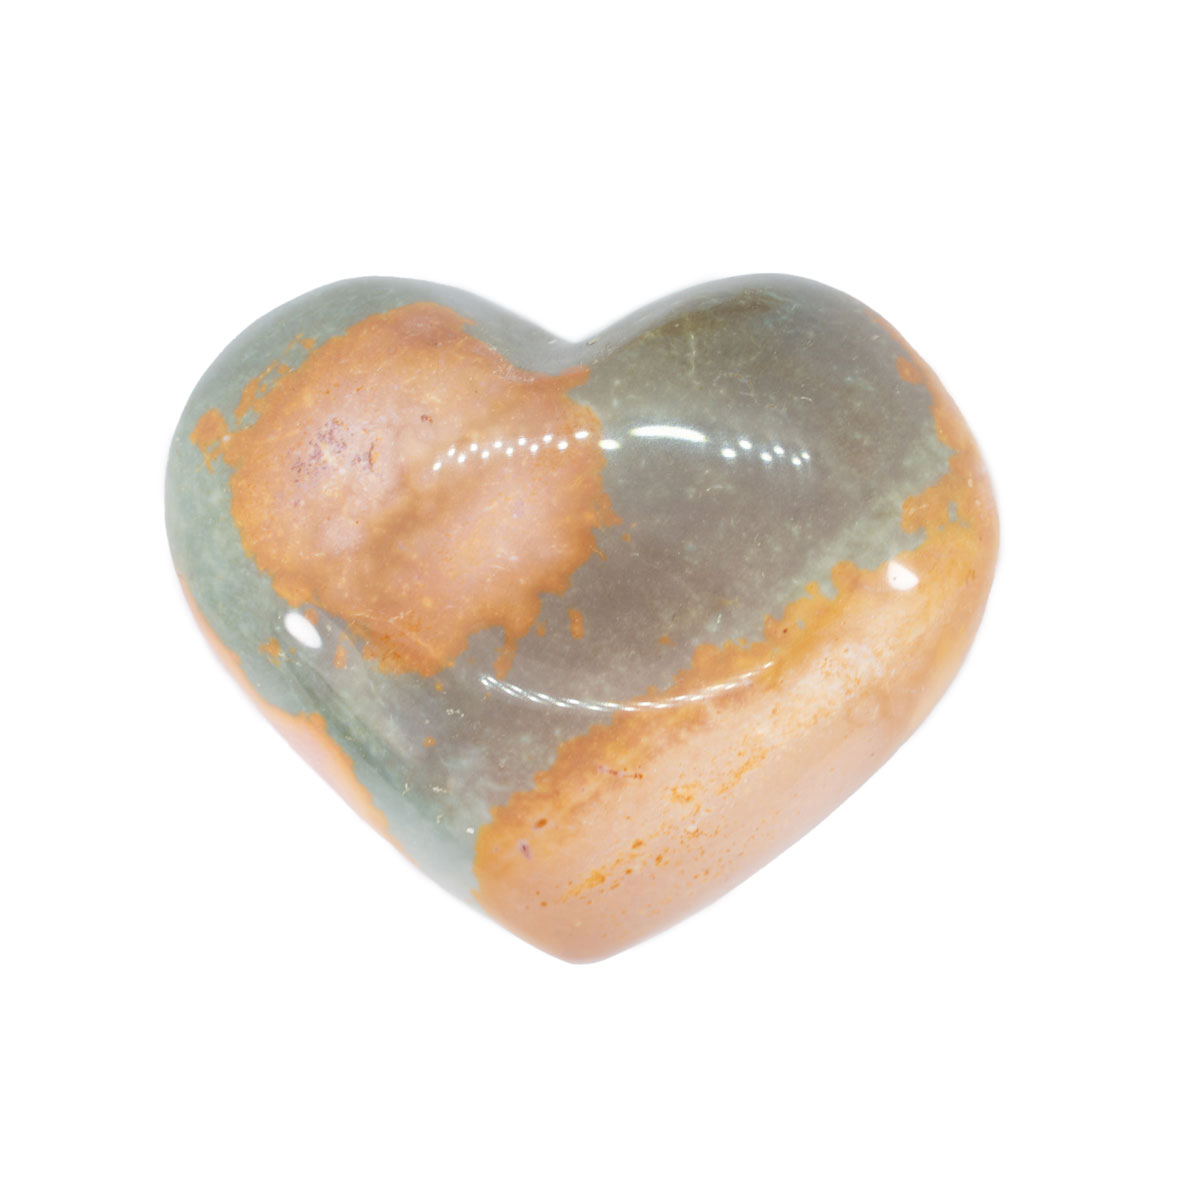 Sri Avinash Infused™ Polychrome Jasper Crystal Heart - Creative Power Infusion